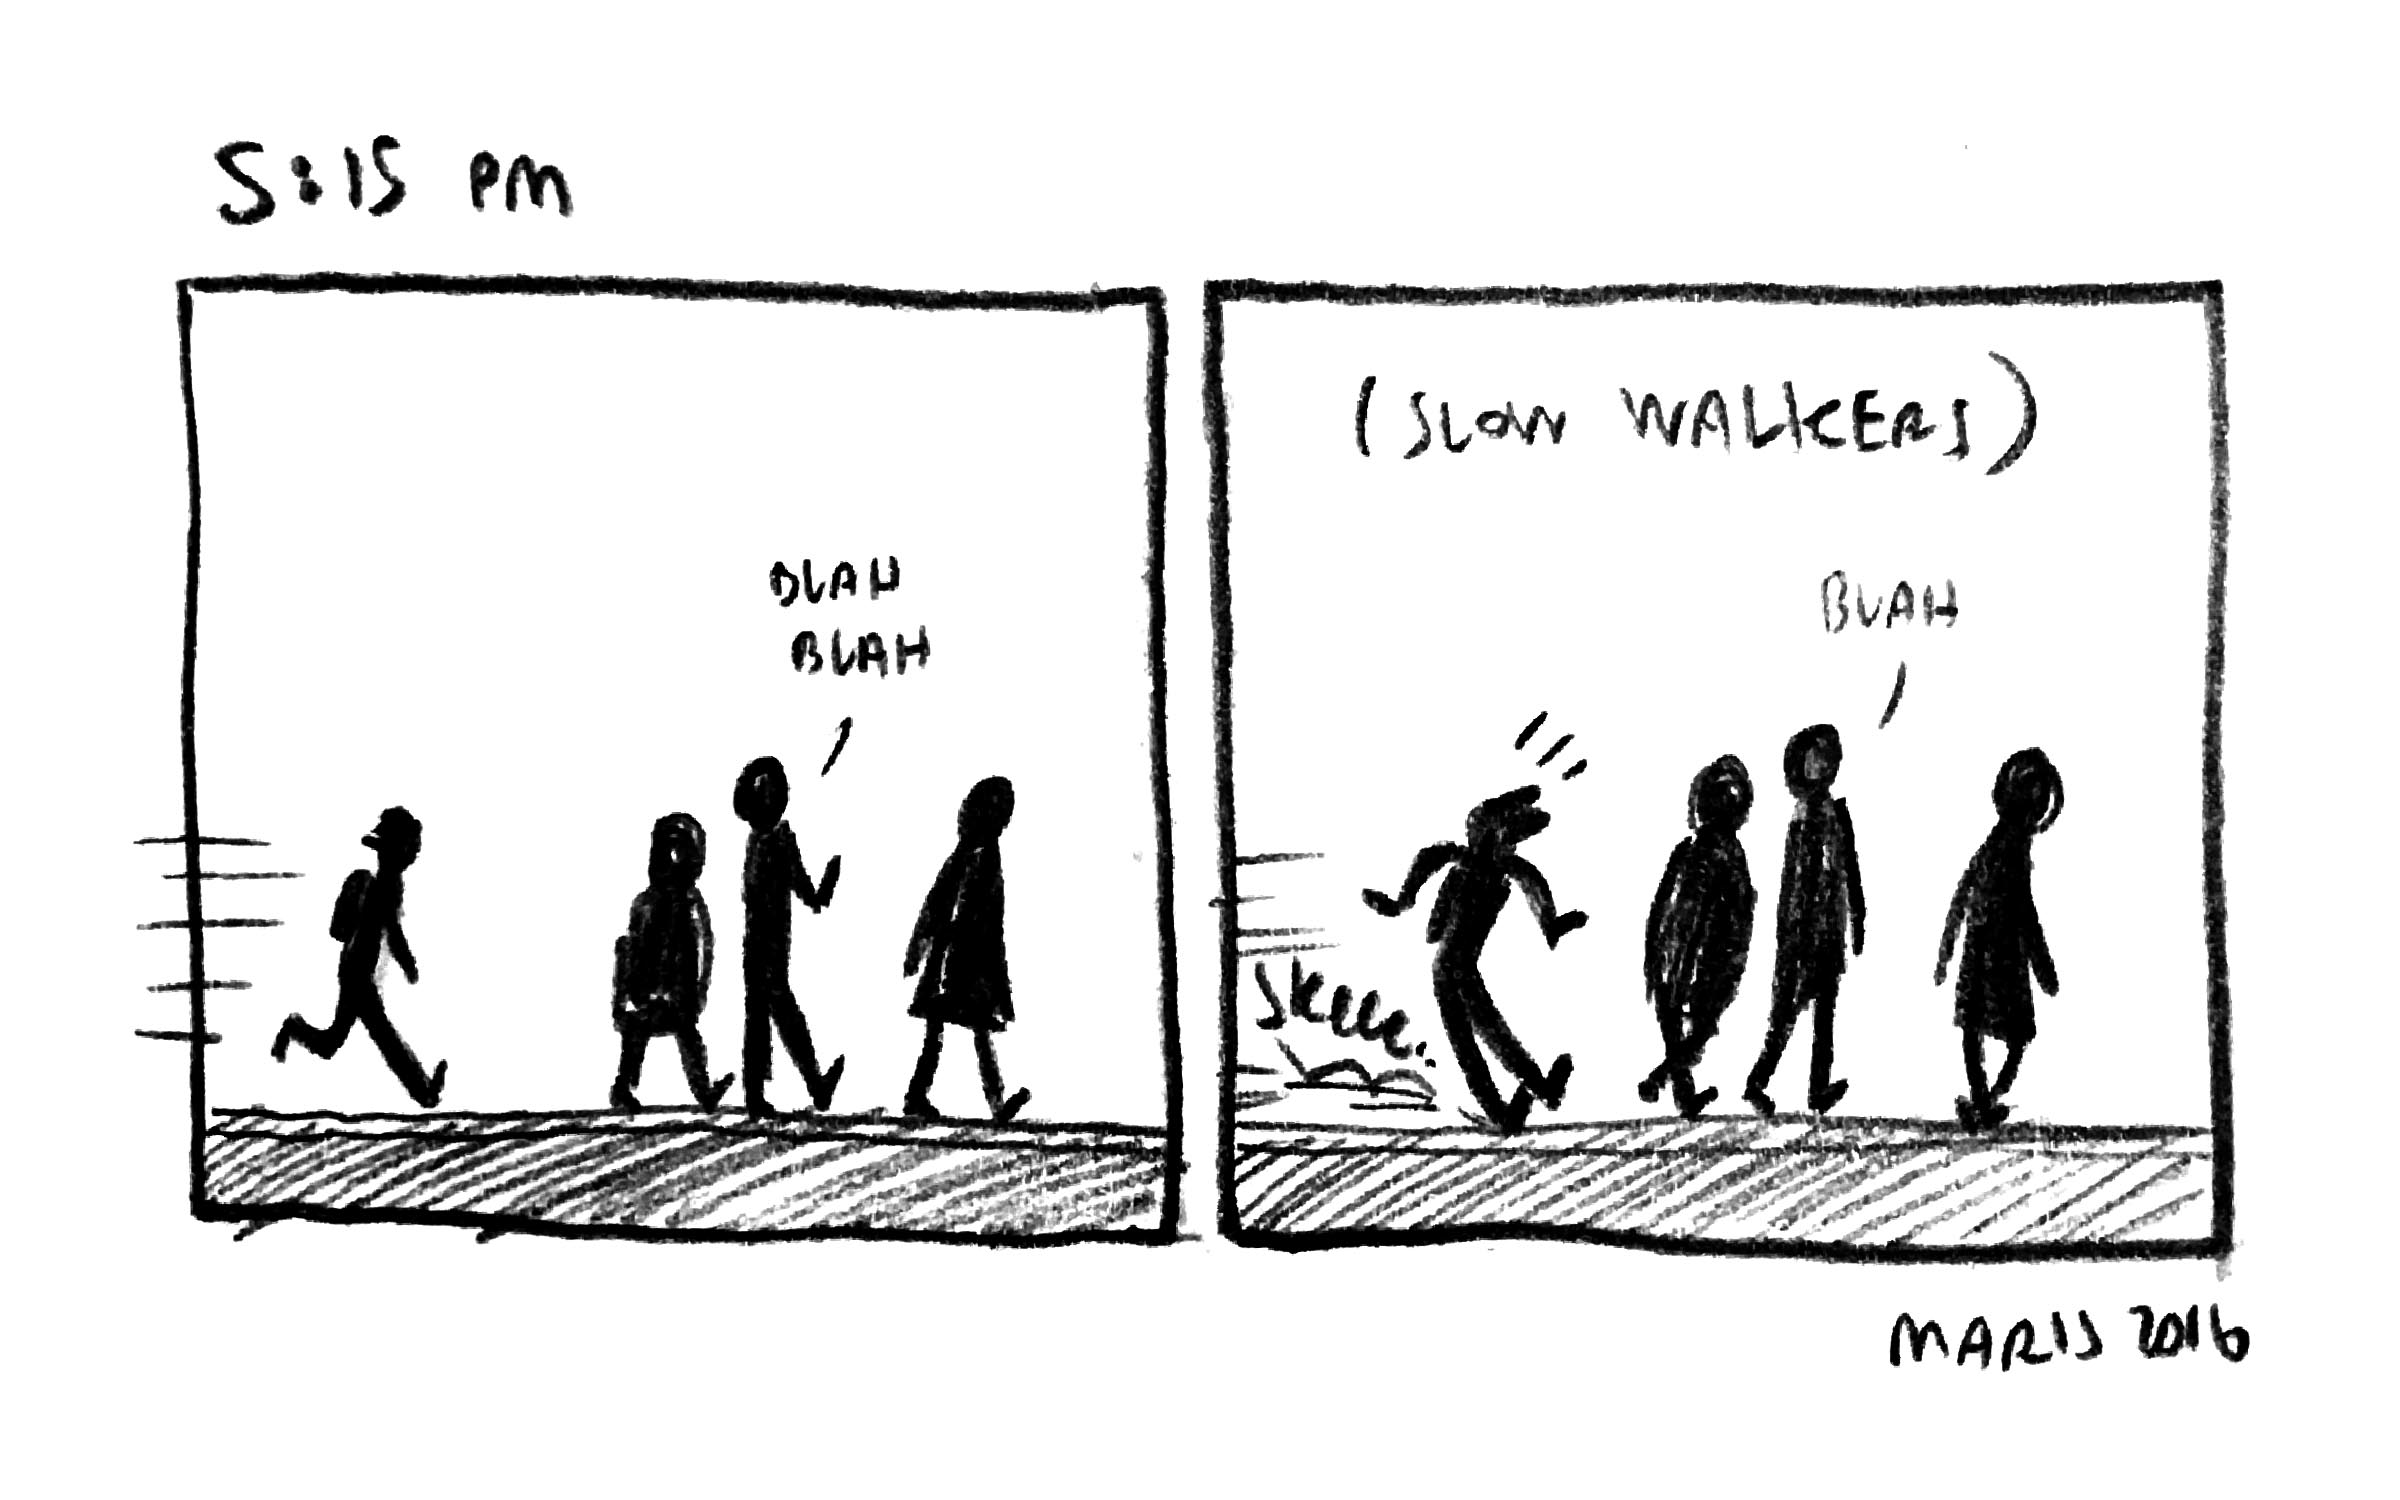 13_mw_2016_hourlies.jpg